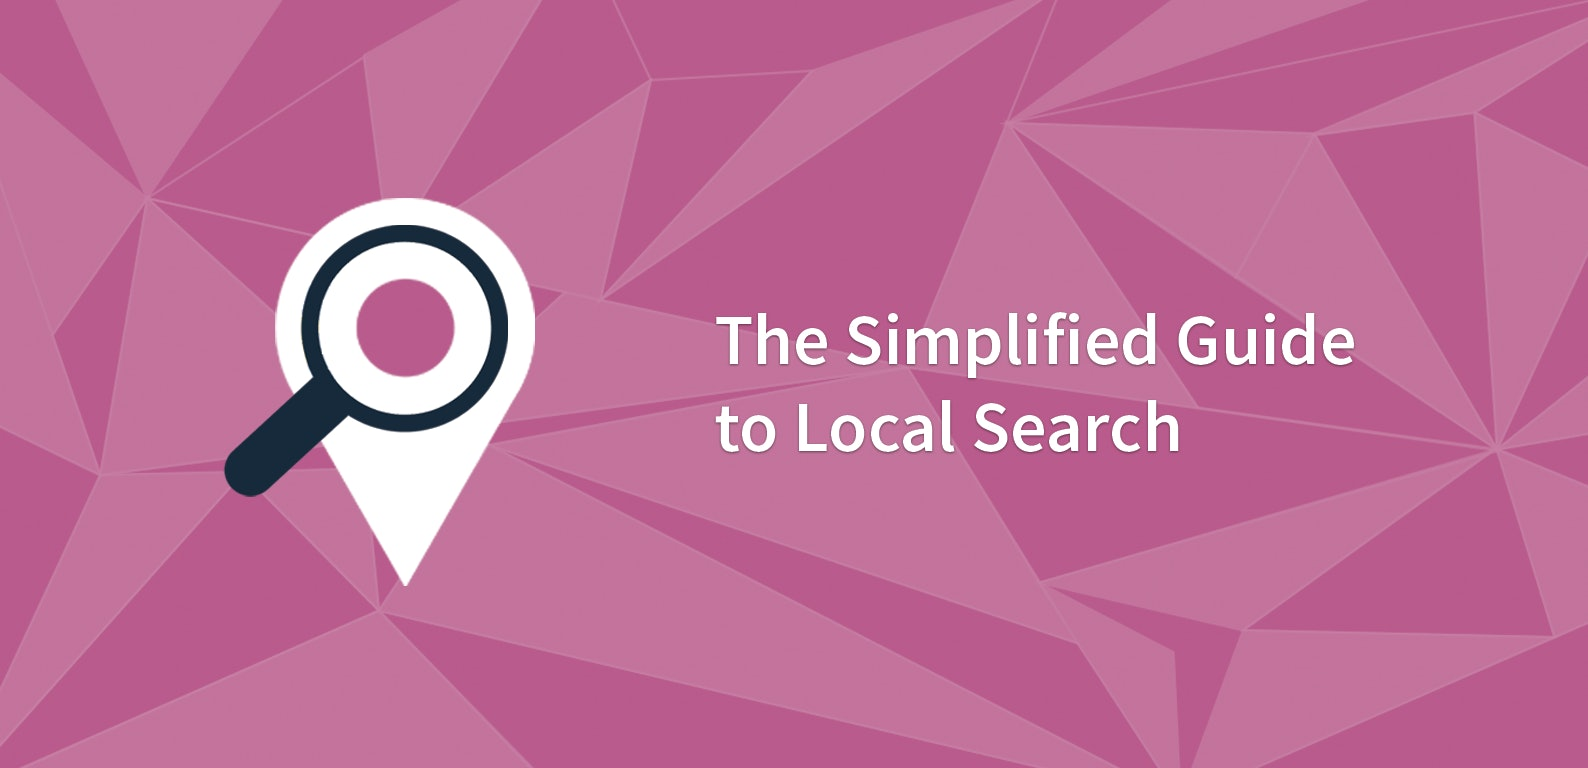 The Simplified Guide to Local Search